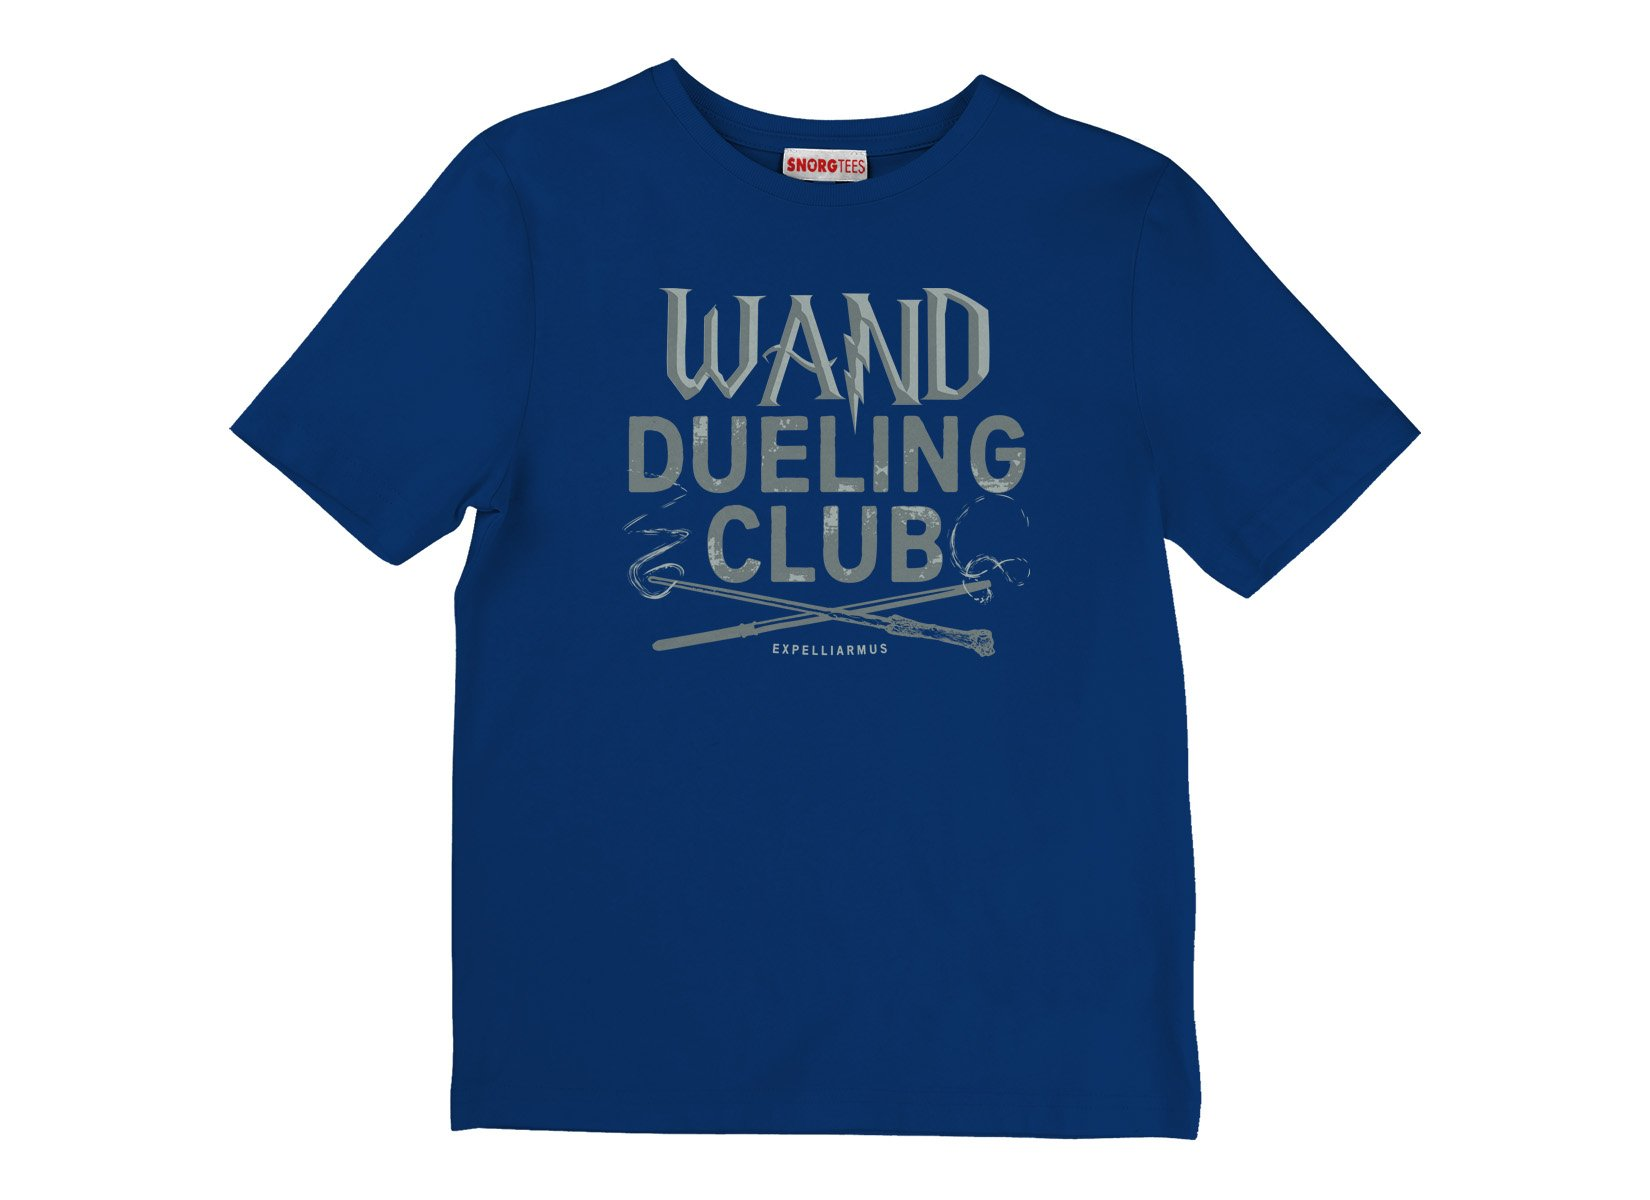 Wand Dueling Club on Kids T-Shirt